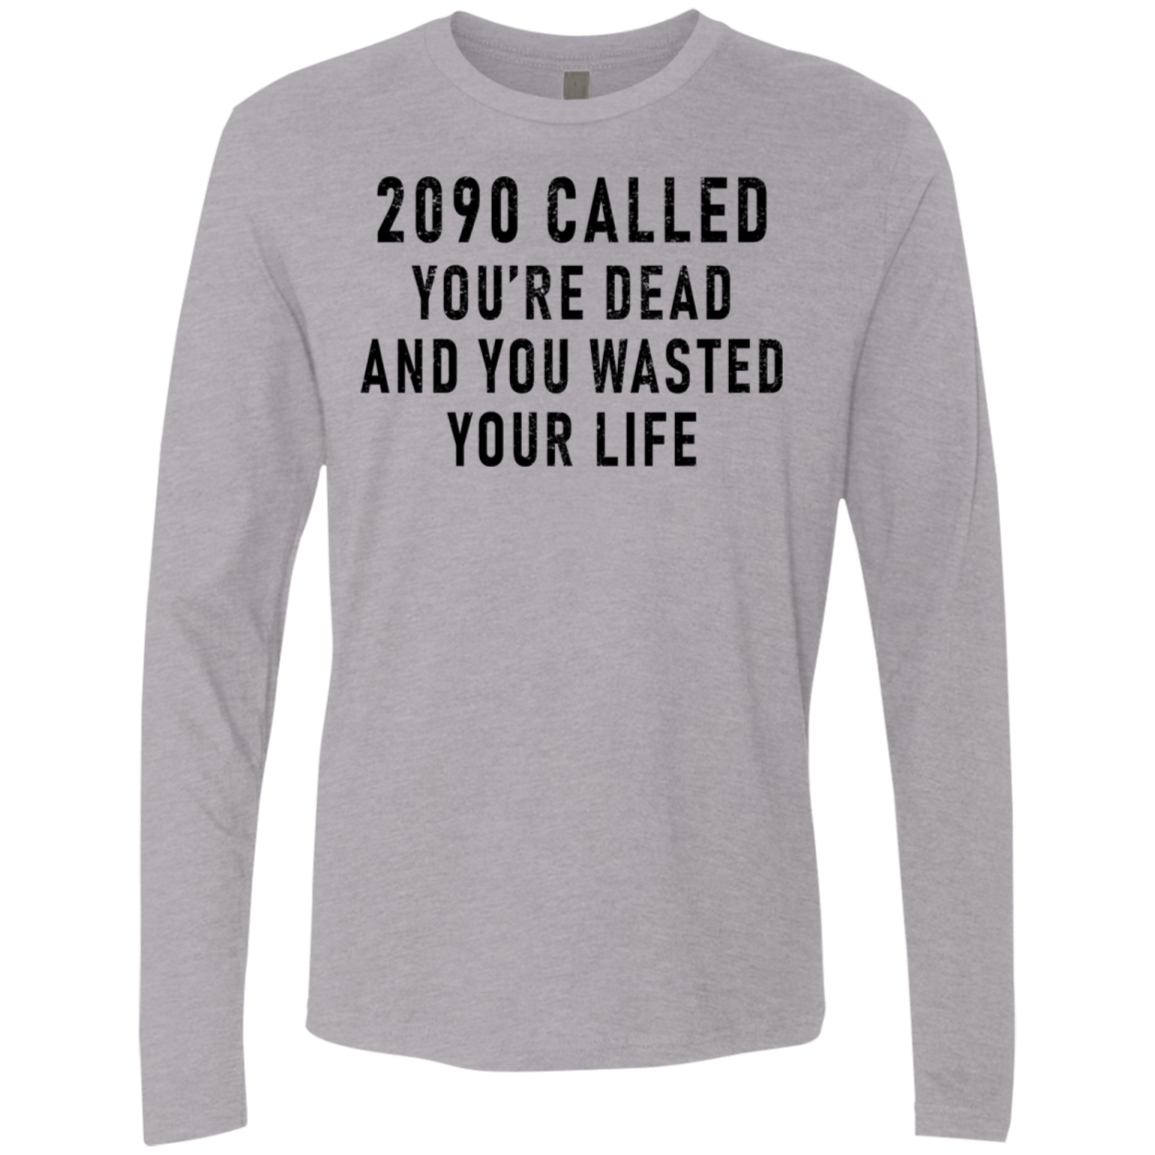 2090 Called You're Dead And You Wasted Your Life Men's Long Sleeve Tee